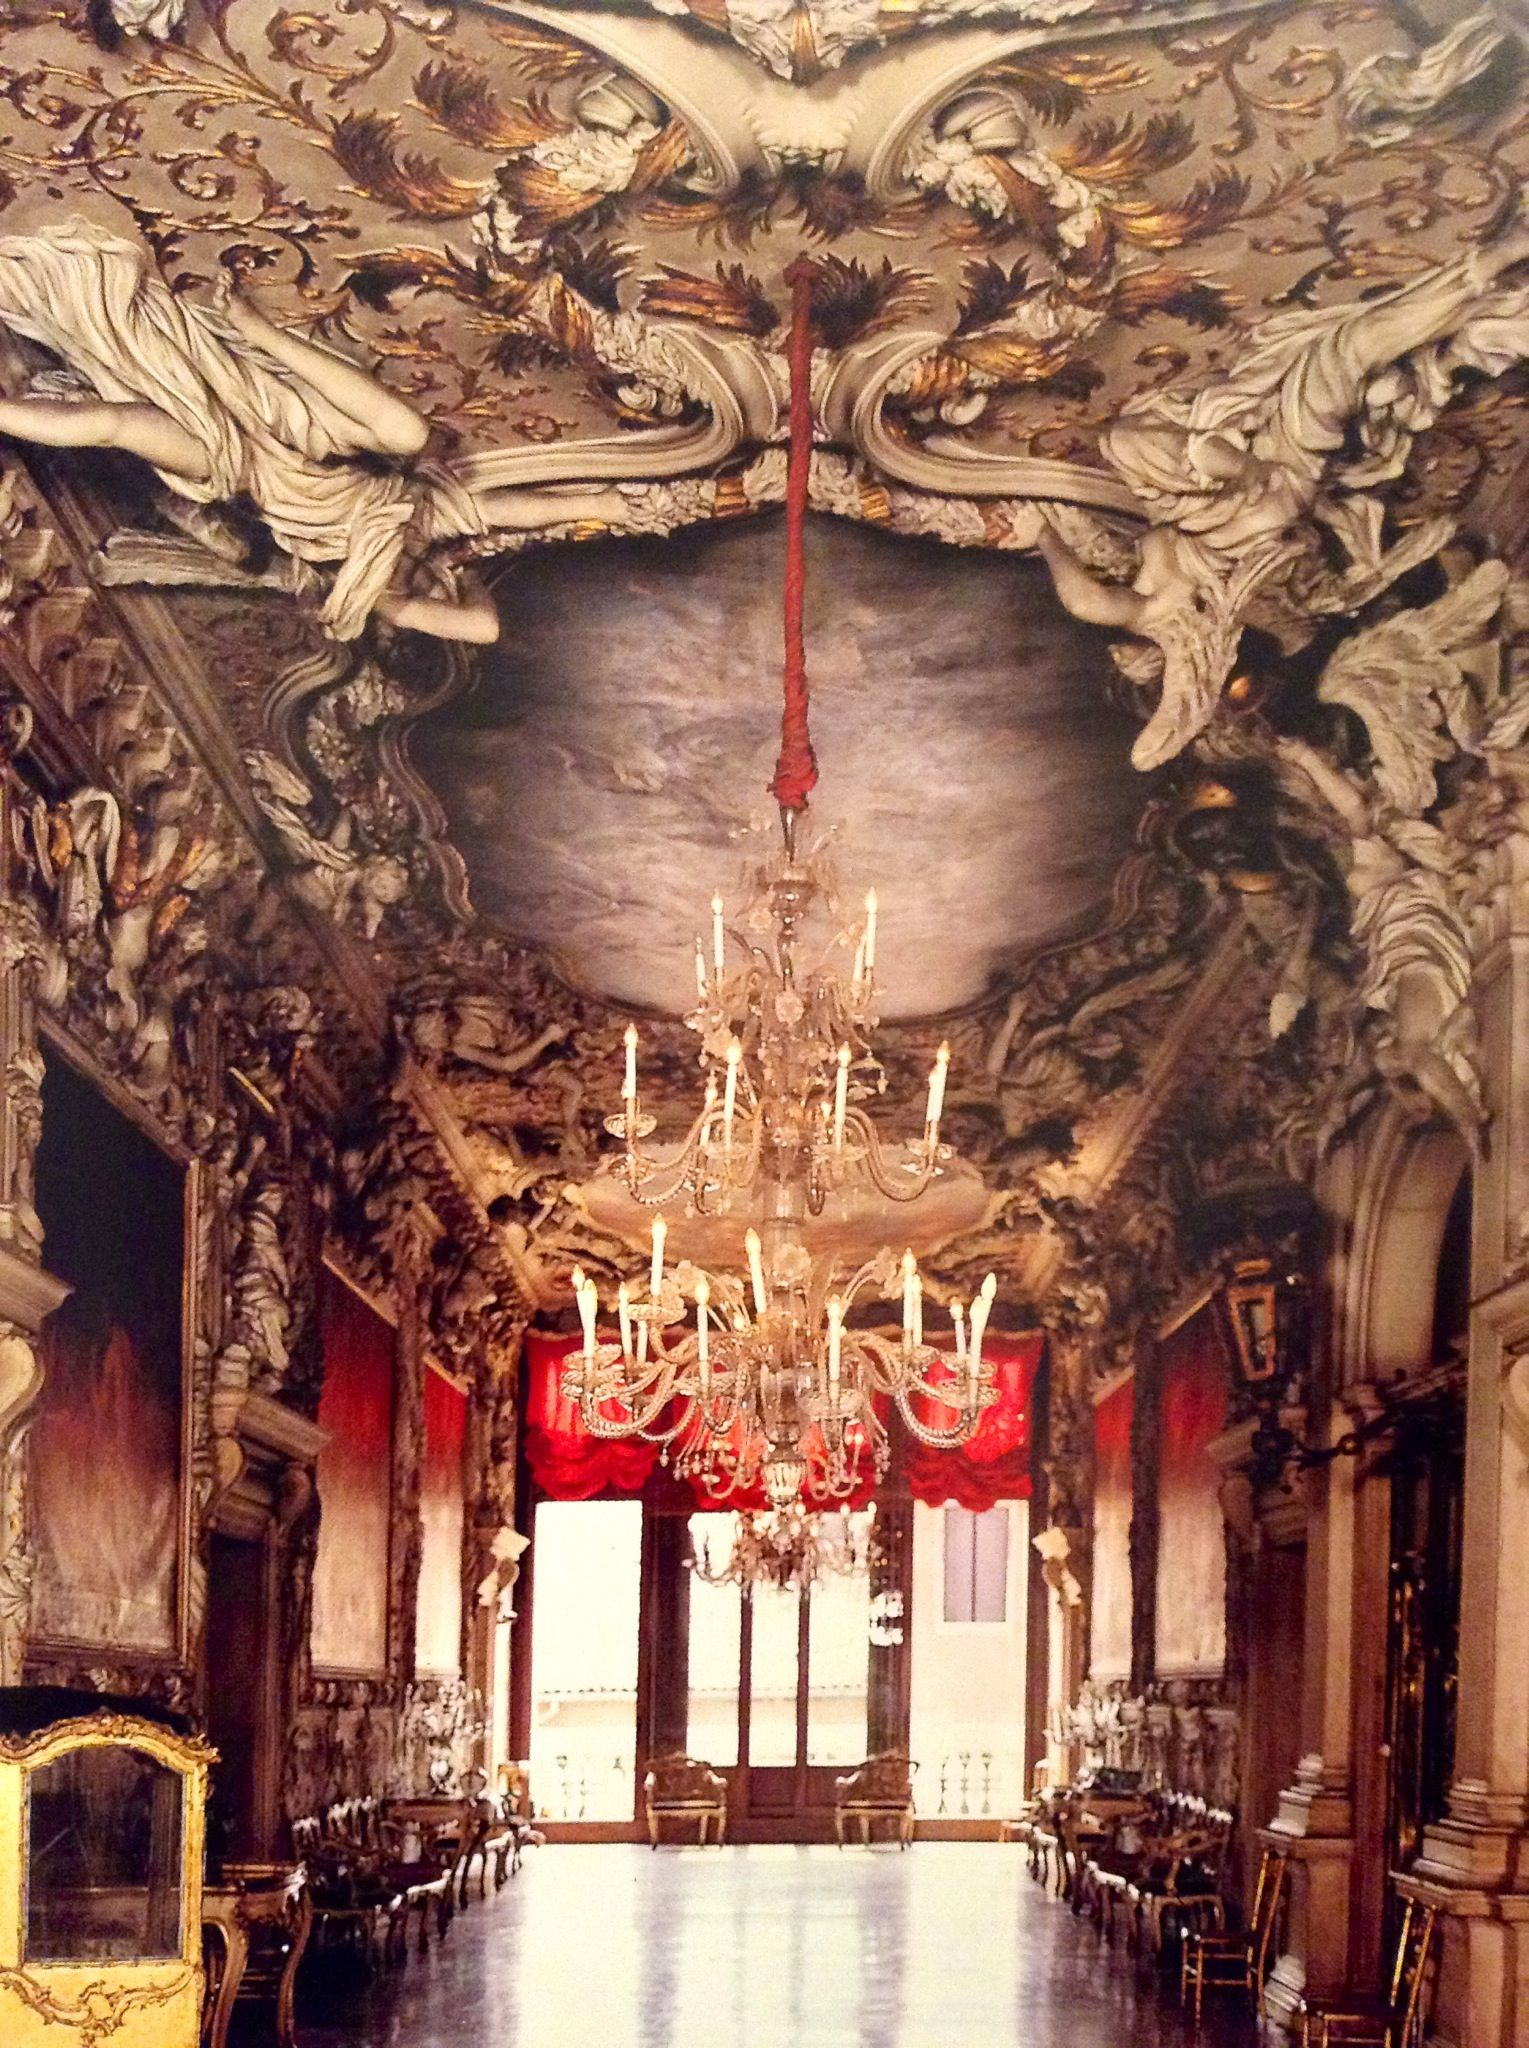 Stucco ceiling of the portego, realized by Stazio at the end of XVII century, al Palazzo Albrizzi in S. Apollinare, in Venice.